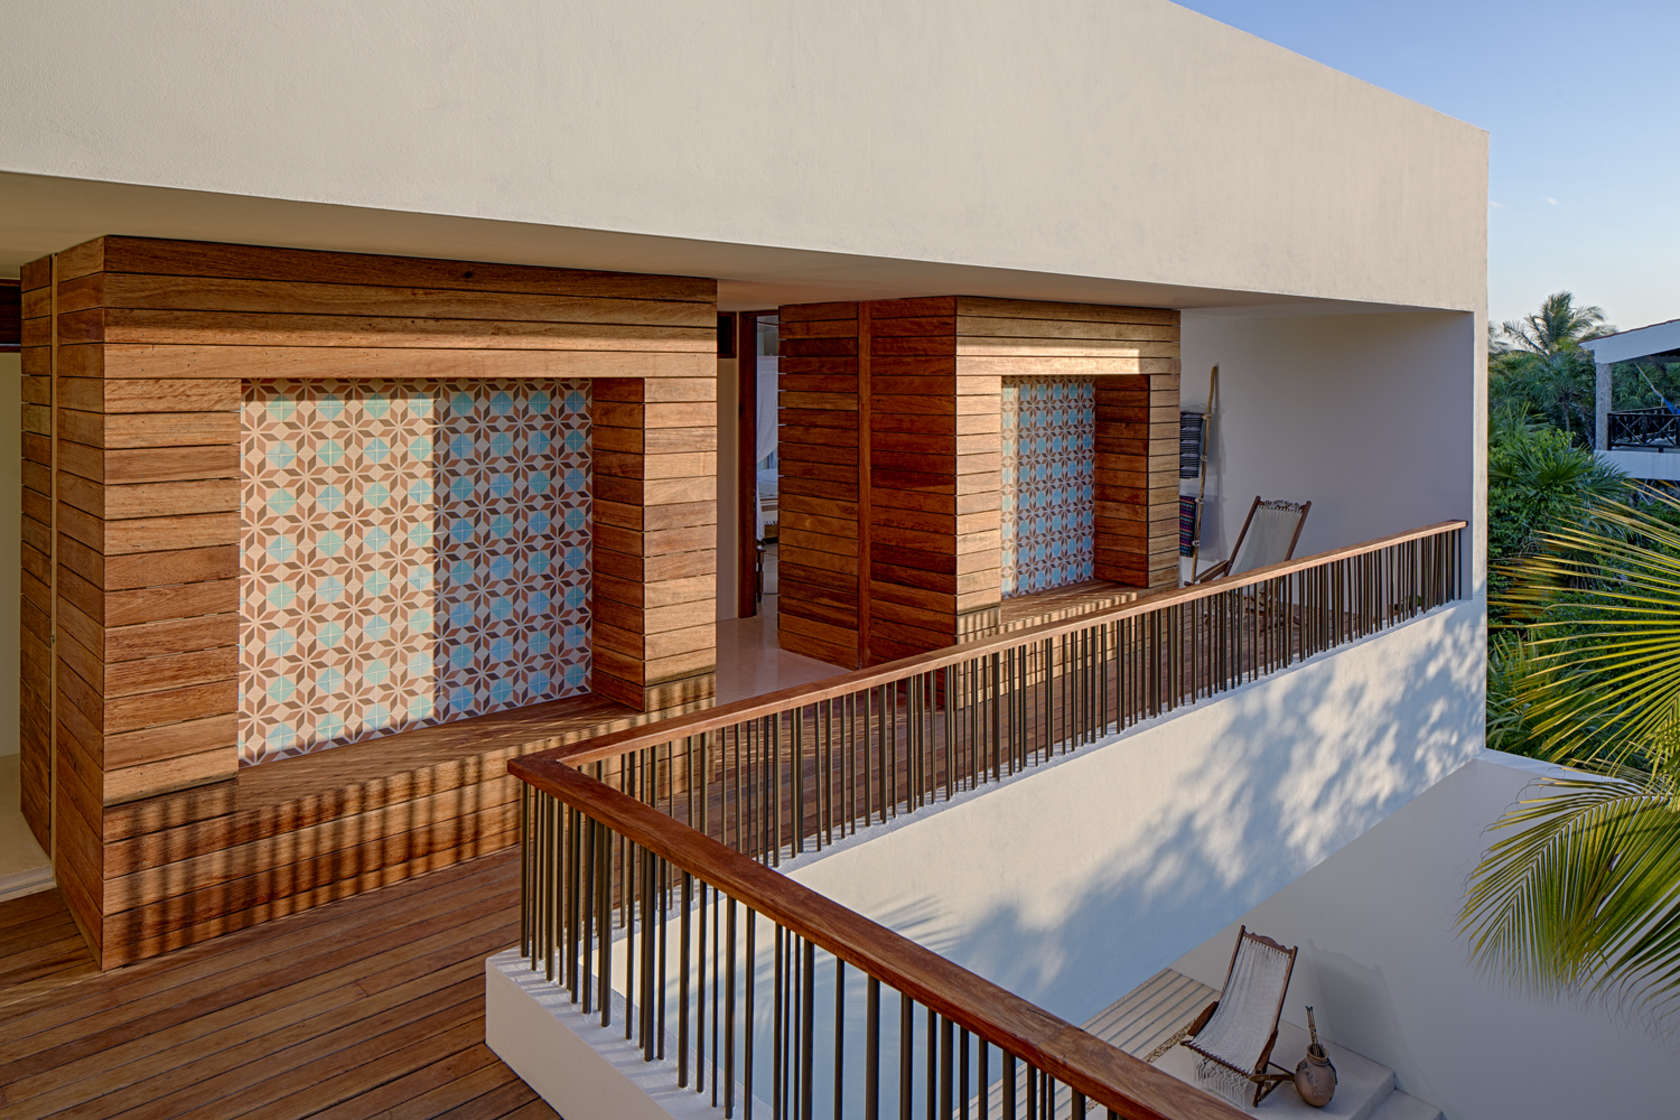 Beach House Exterior - Eco friendly house in mexico does not sacrifice style